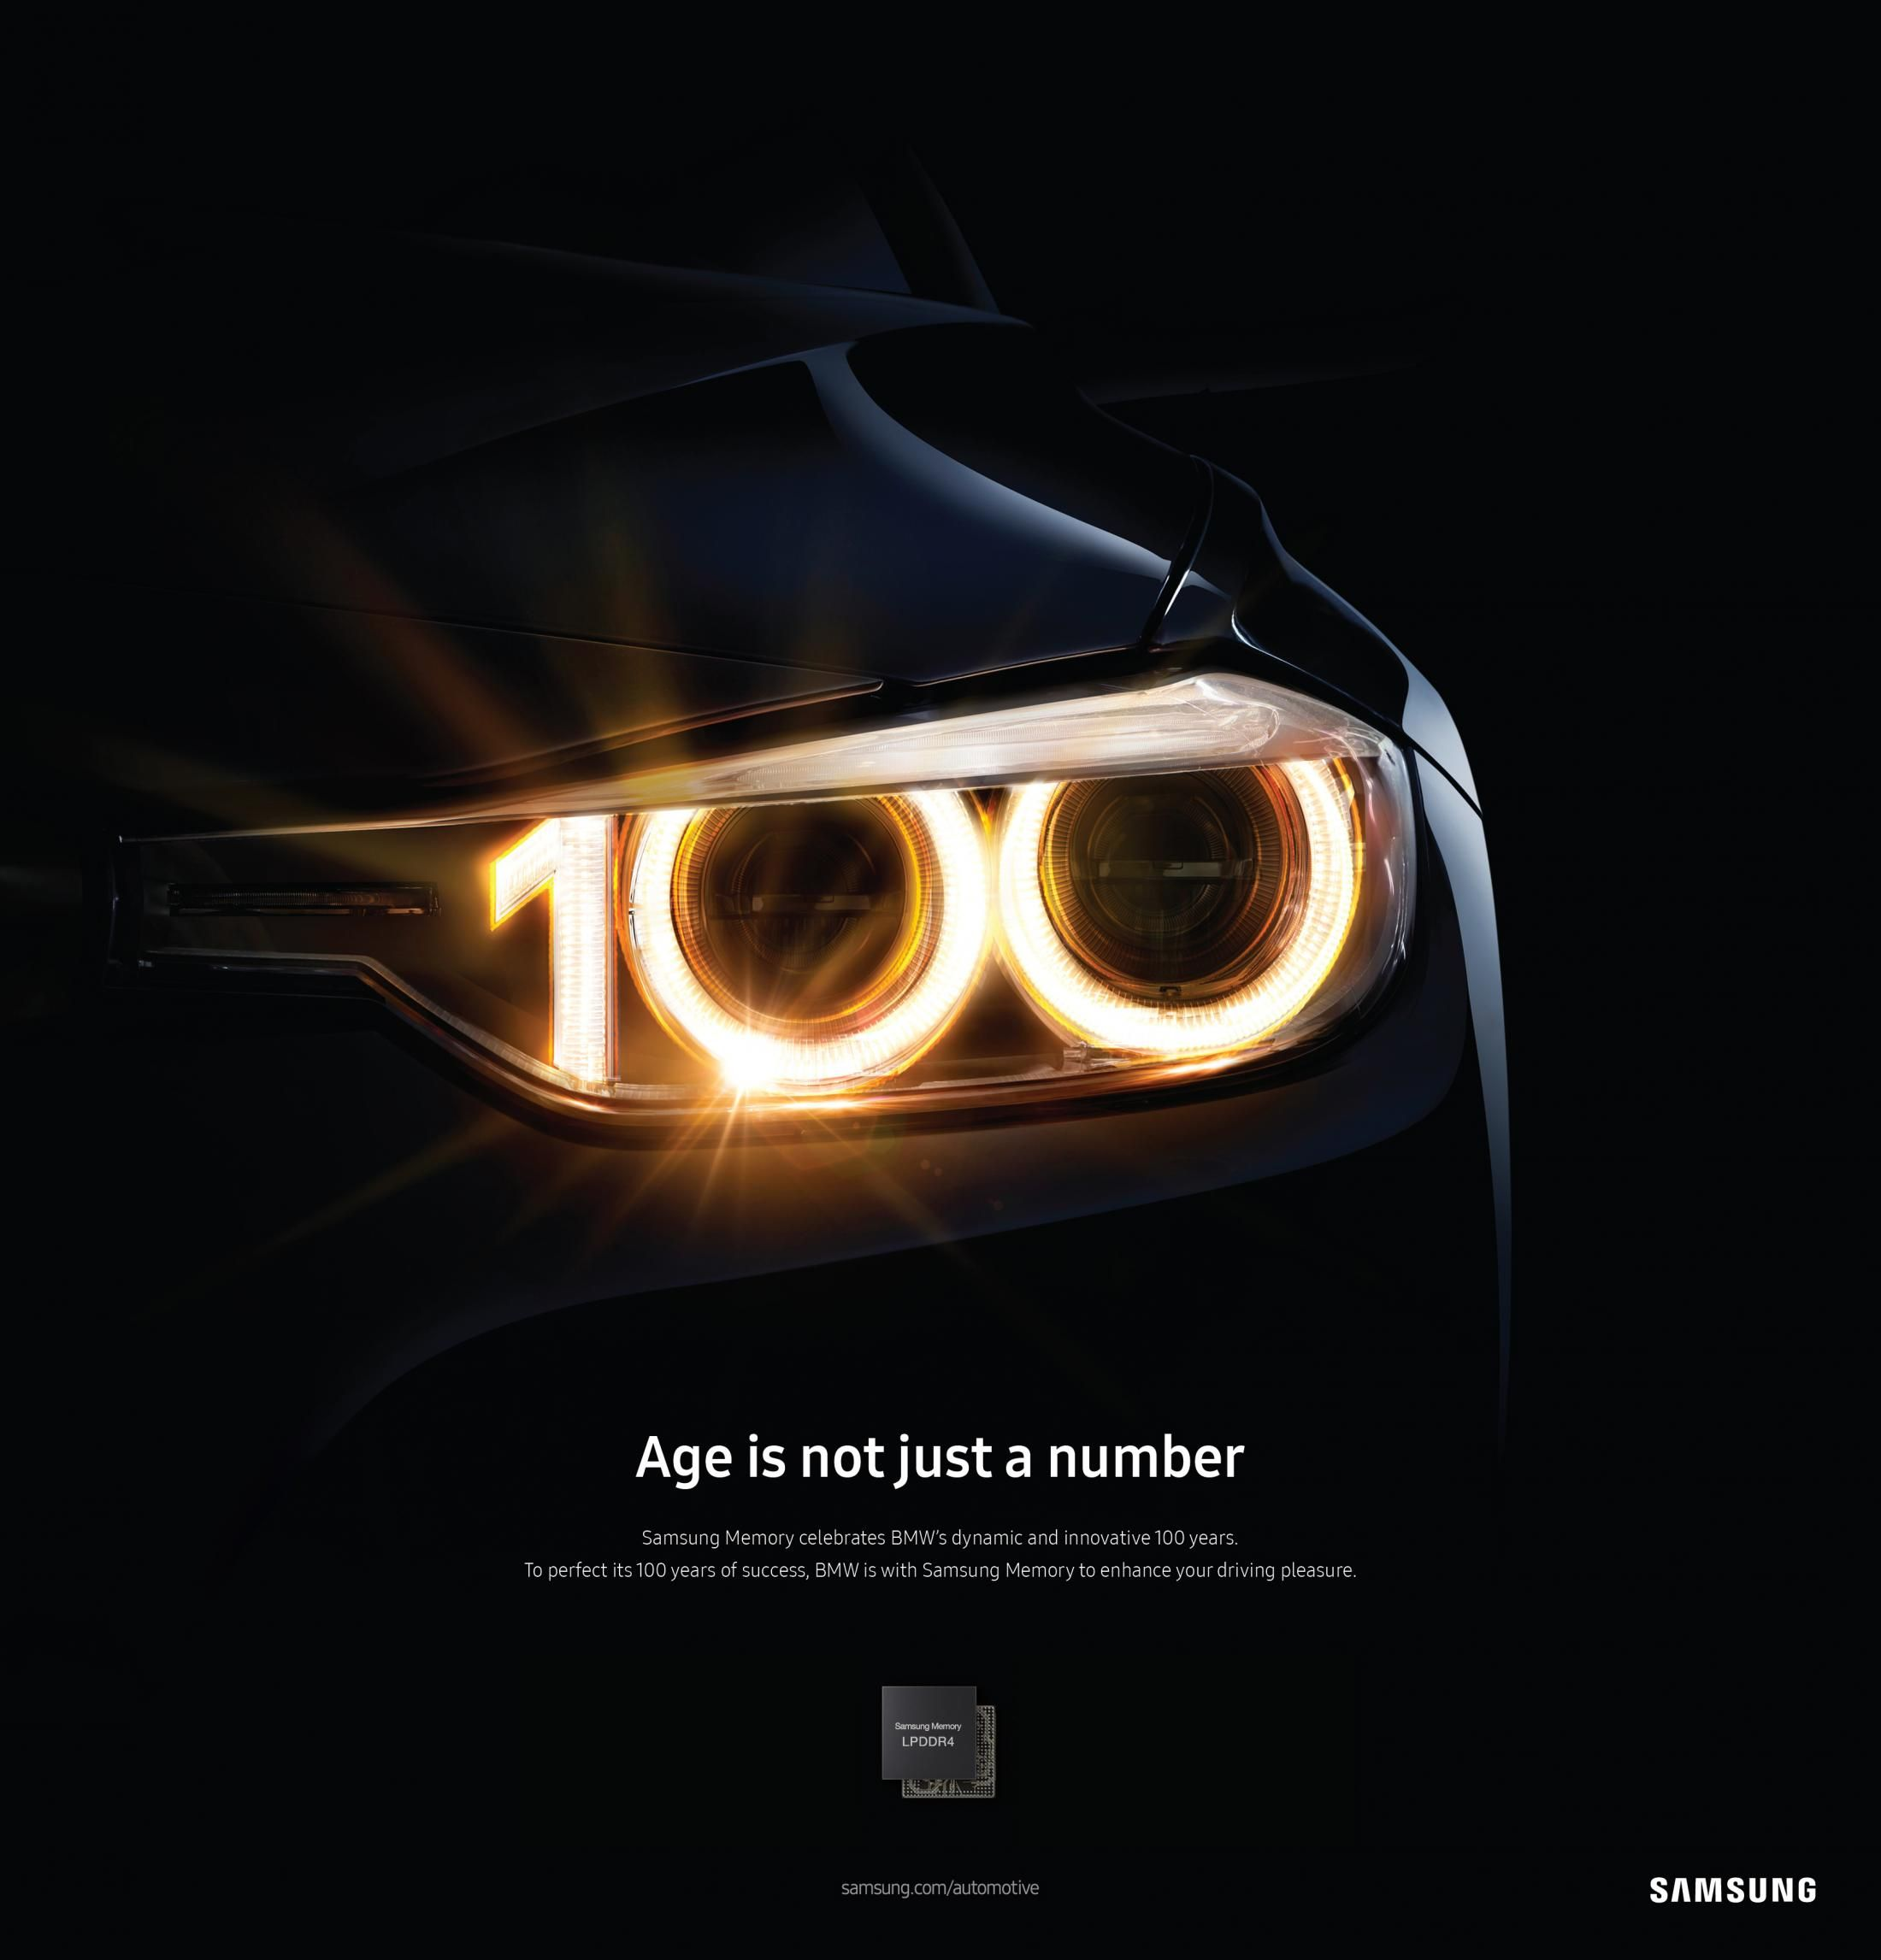 Samsung: Age Is Not Just A Number